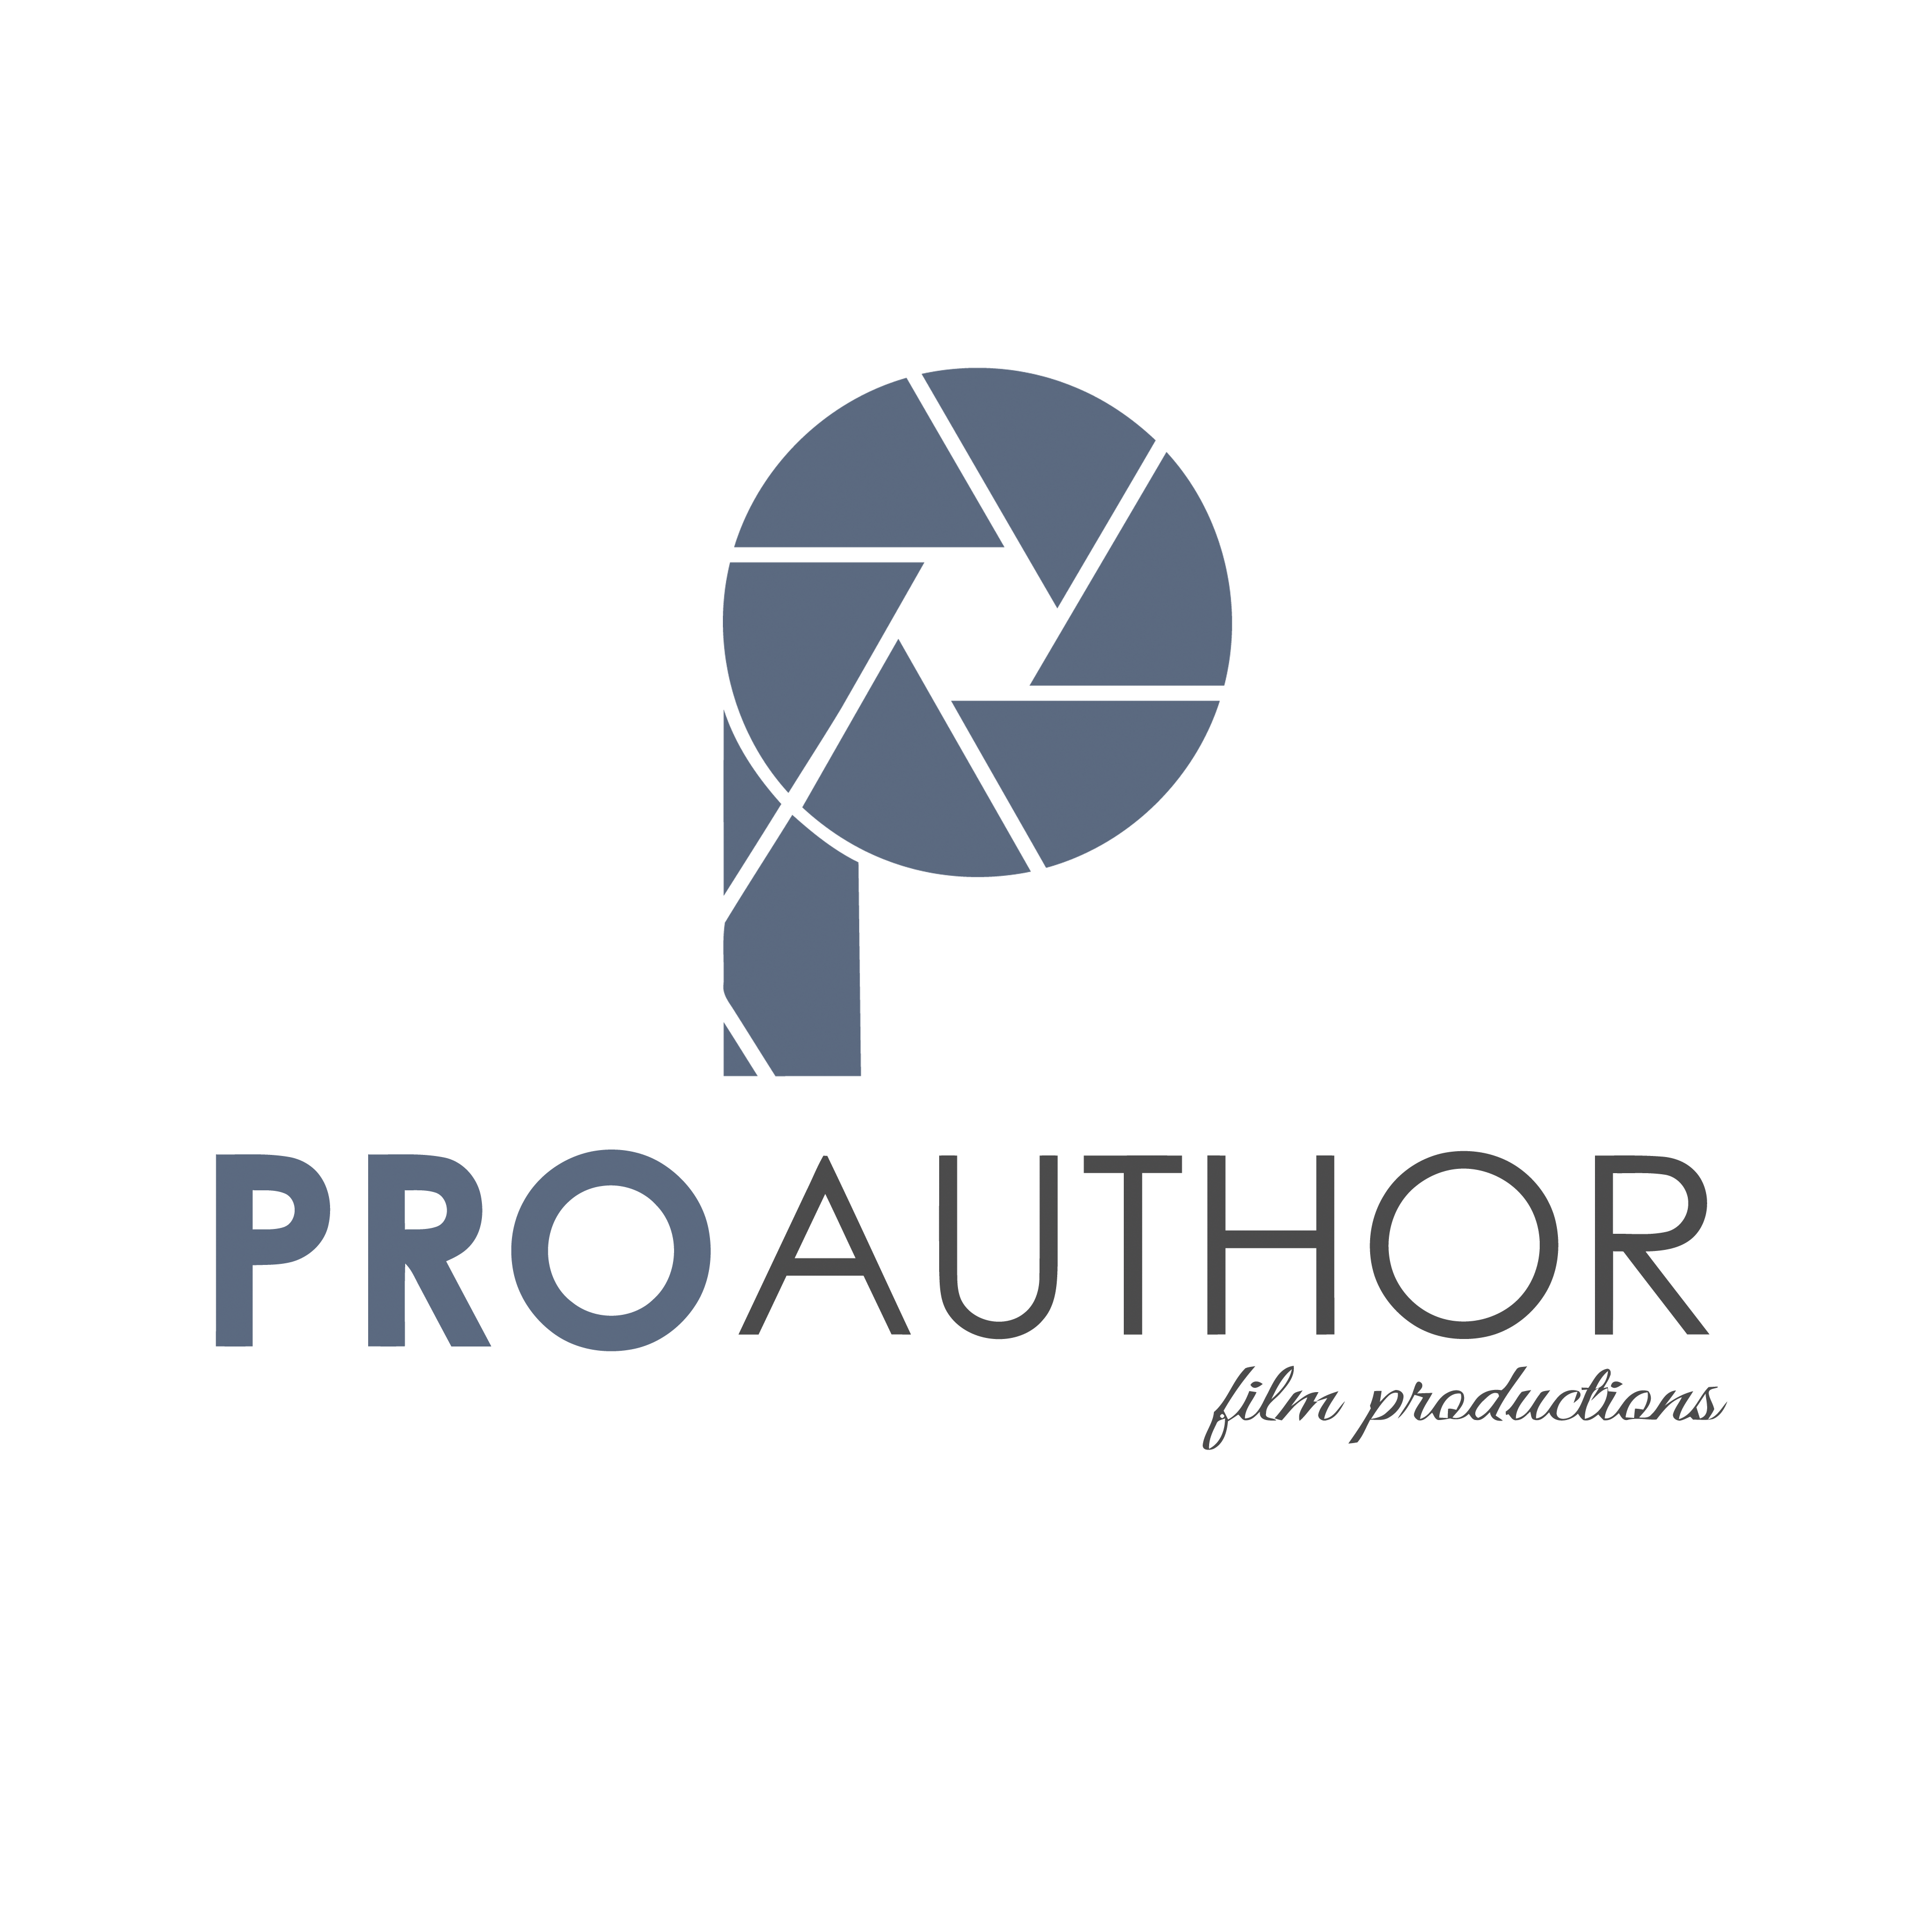 ProAuthor_BIALE